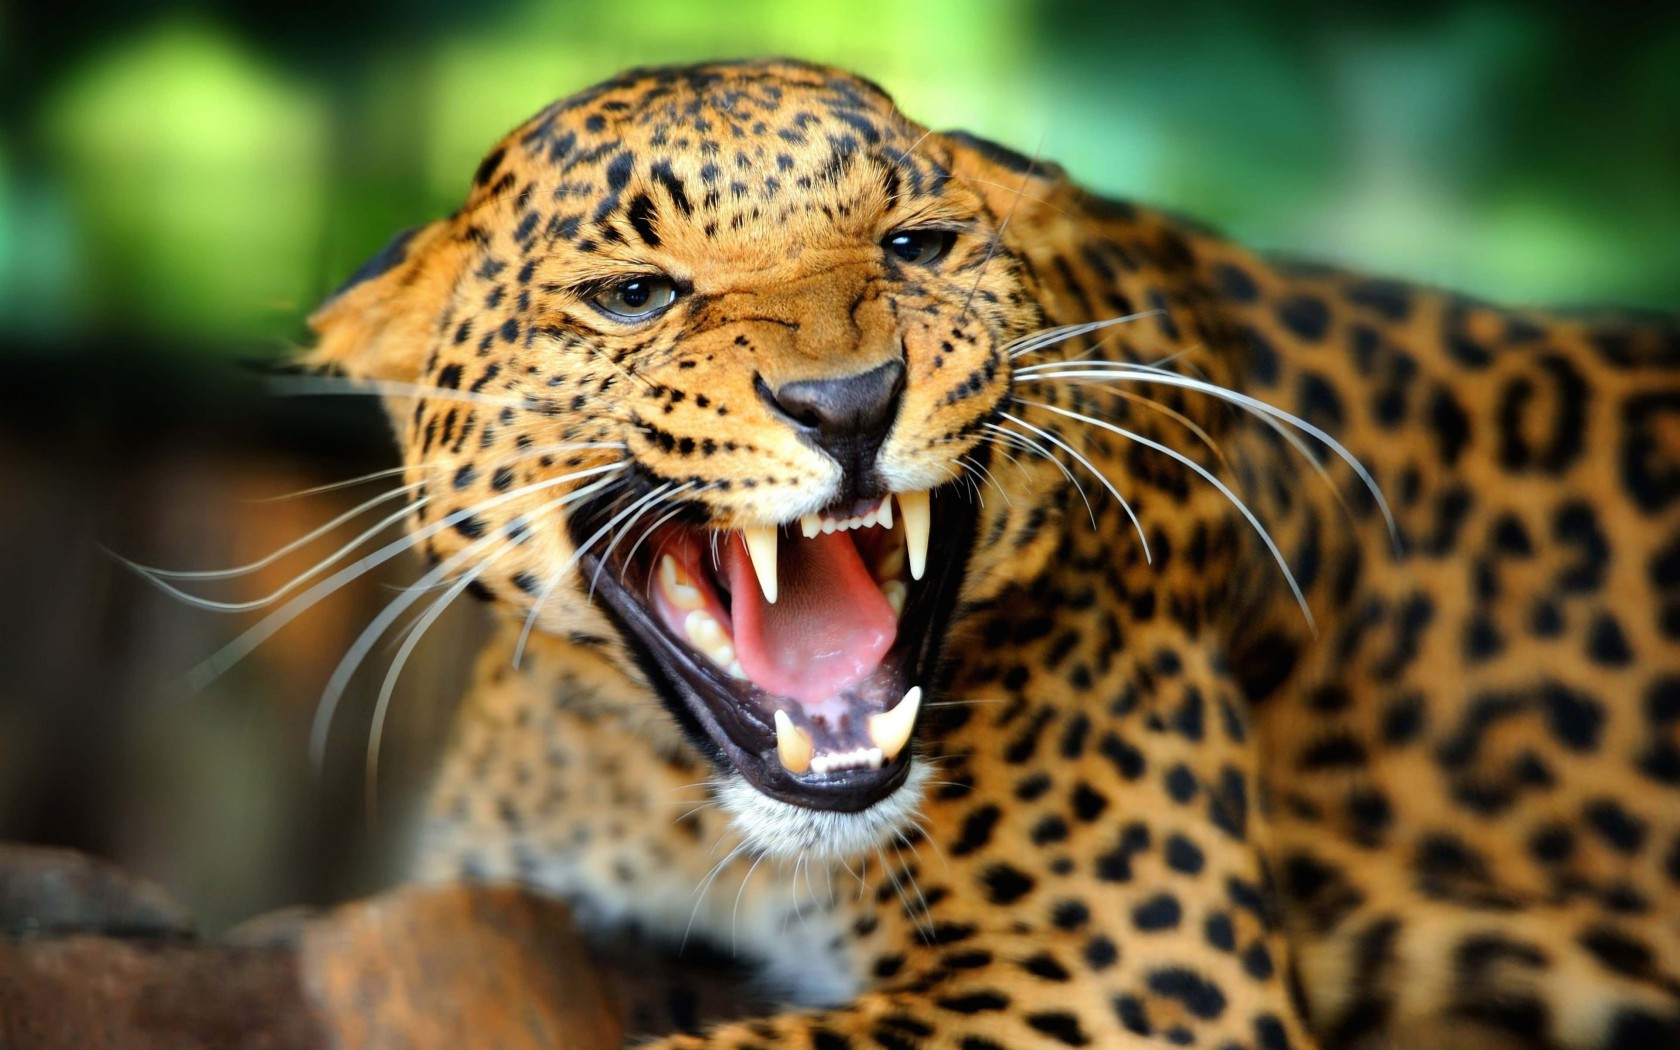 Growling Leopard Wallpaper for Desktop 1680x1050